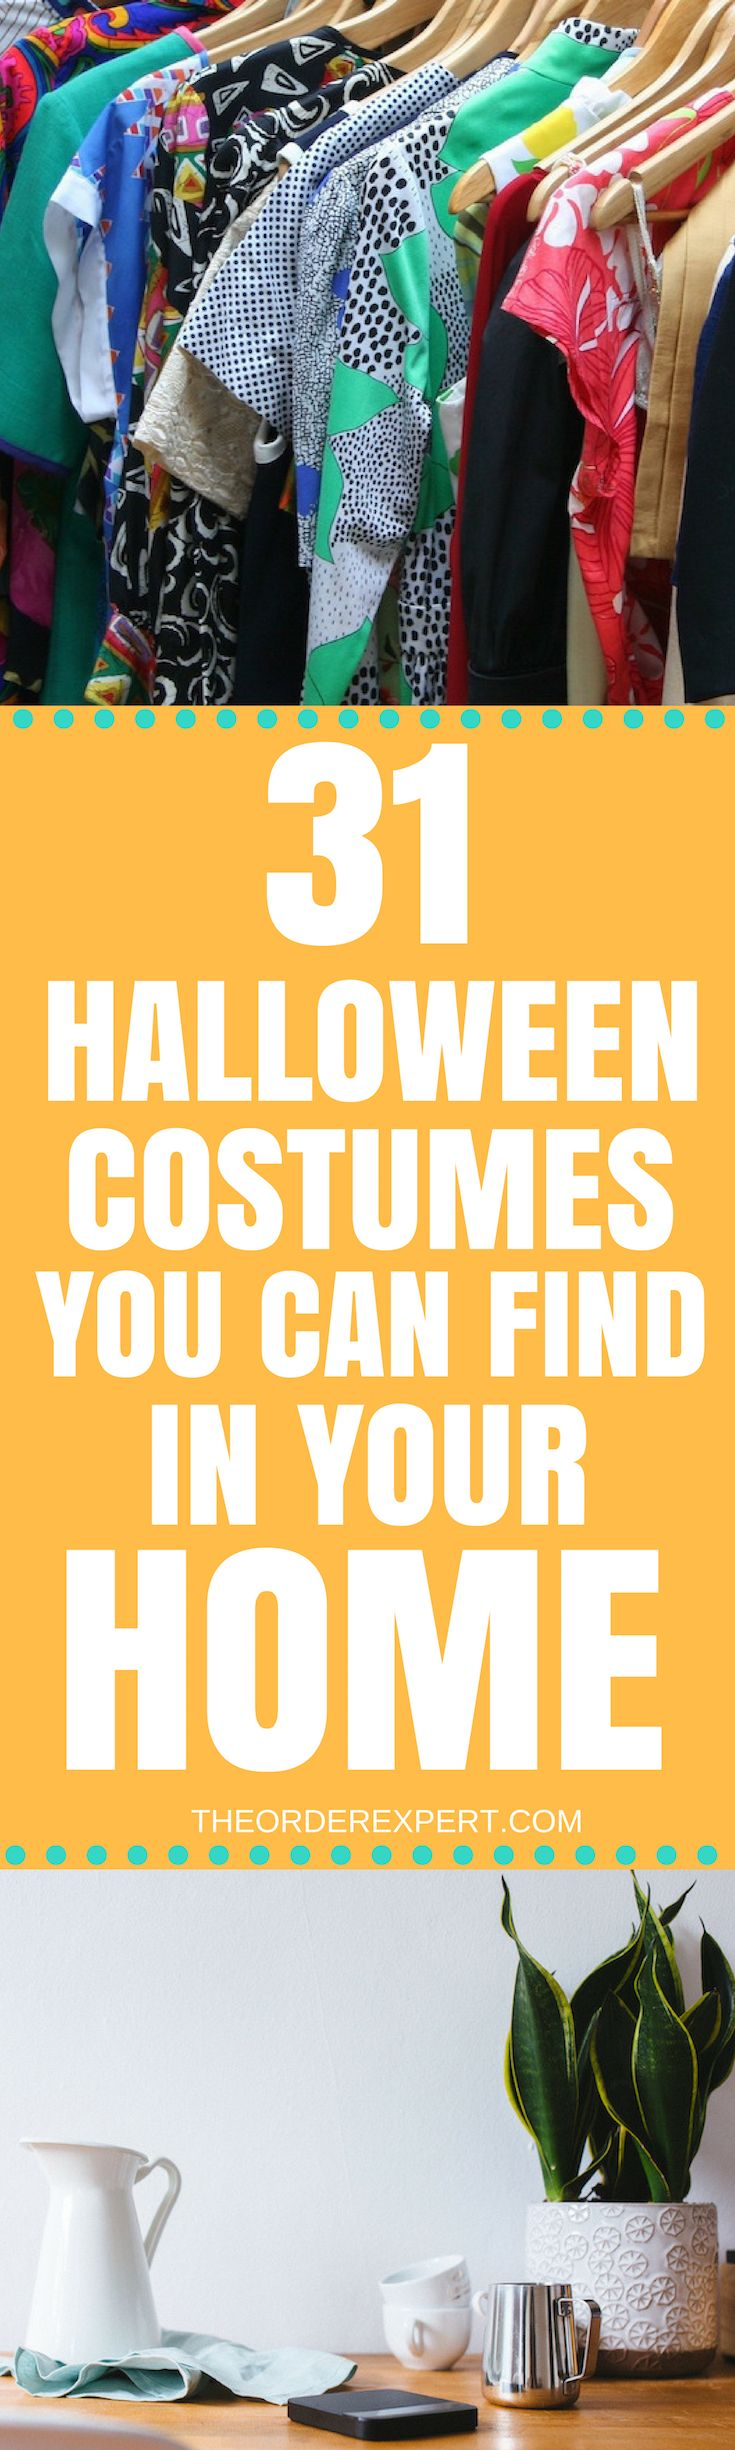 Quick Halloween costumes you can find in rooms of your home! Dress up with this list of clever and easy to make Halloween costumes. Pin now and read later! | 31 Halloween Costumes You Can Find in Your Home